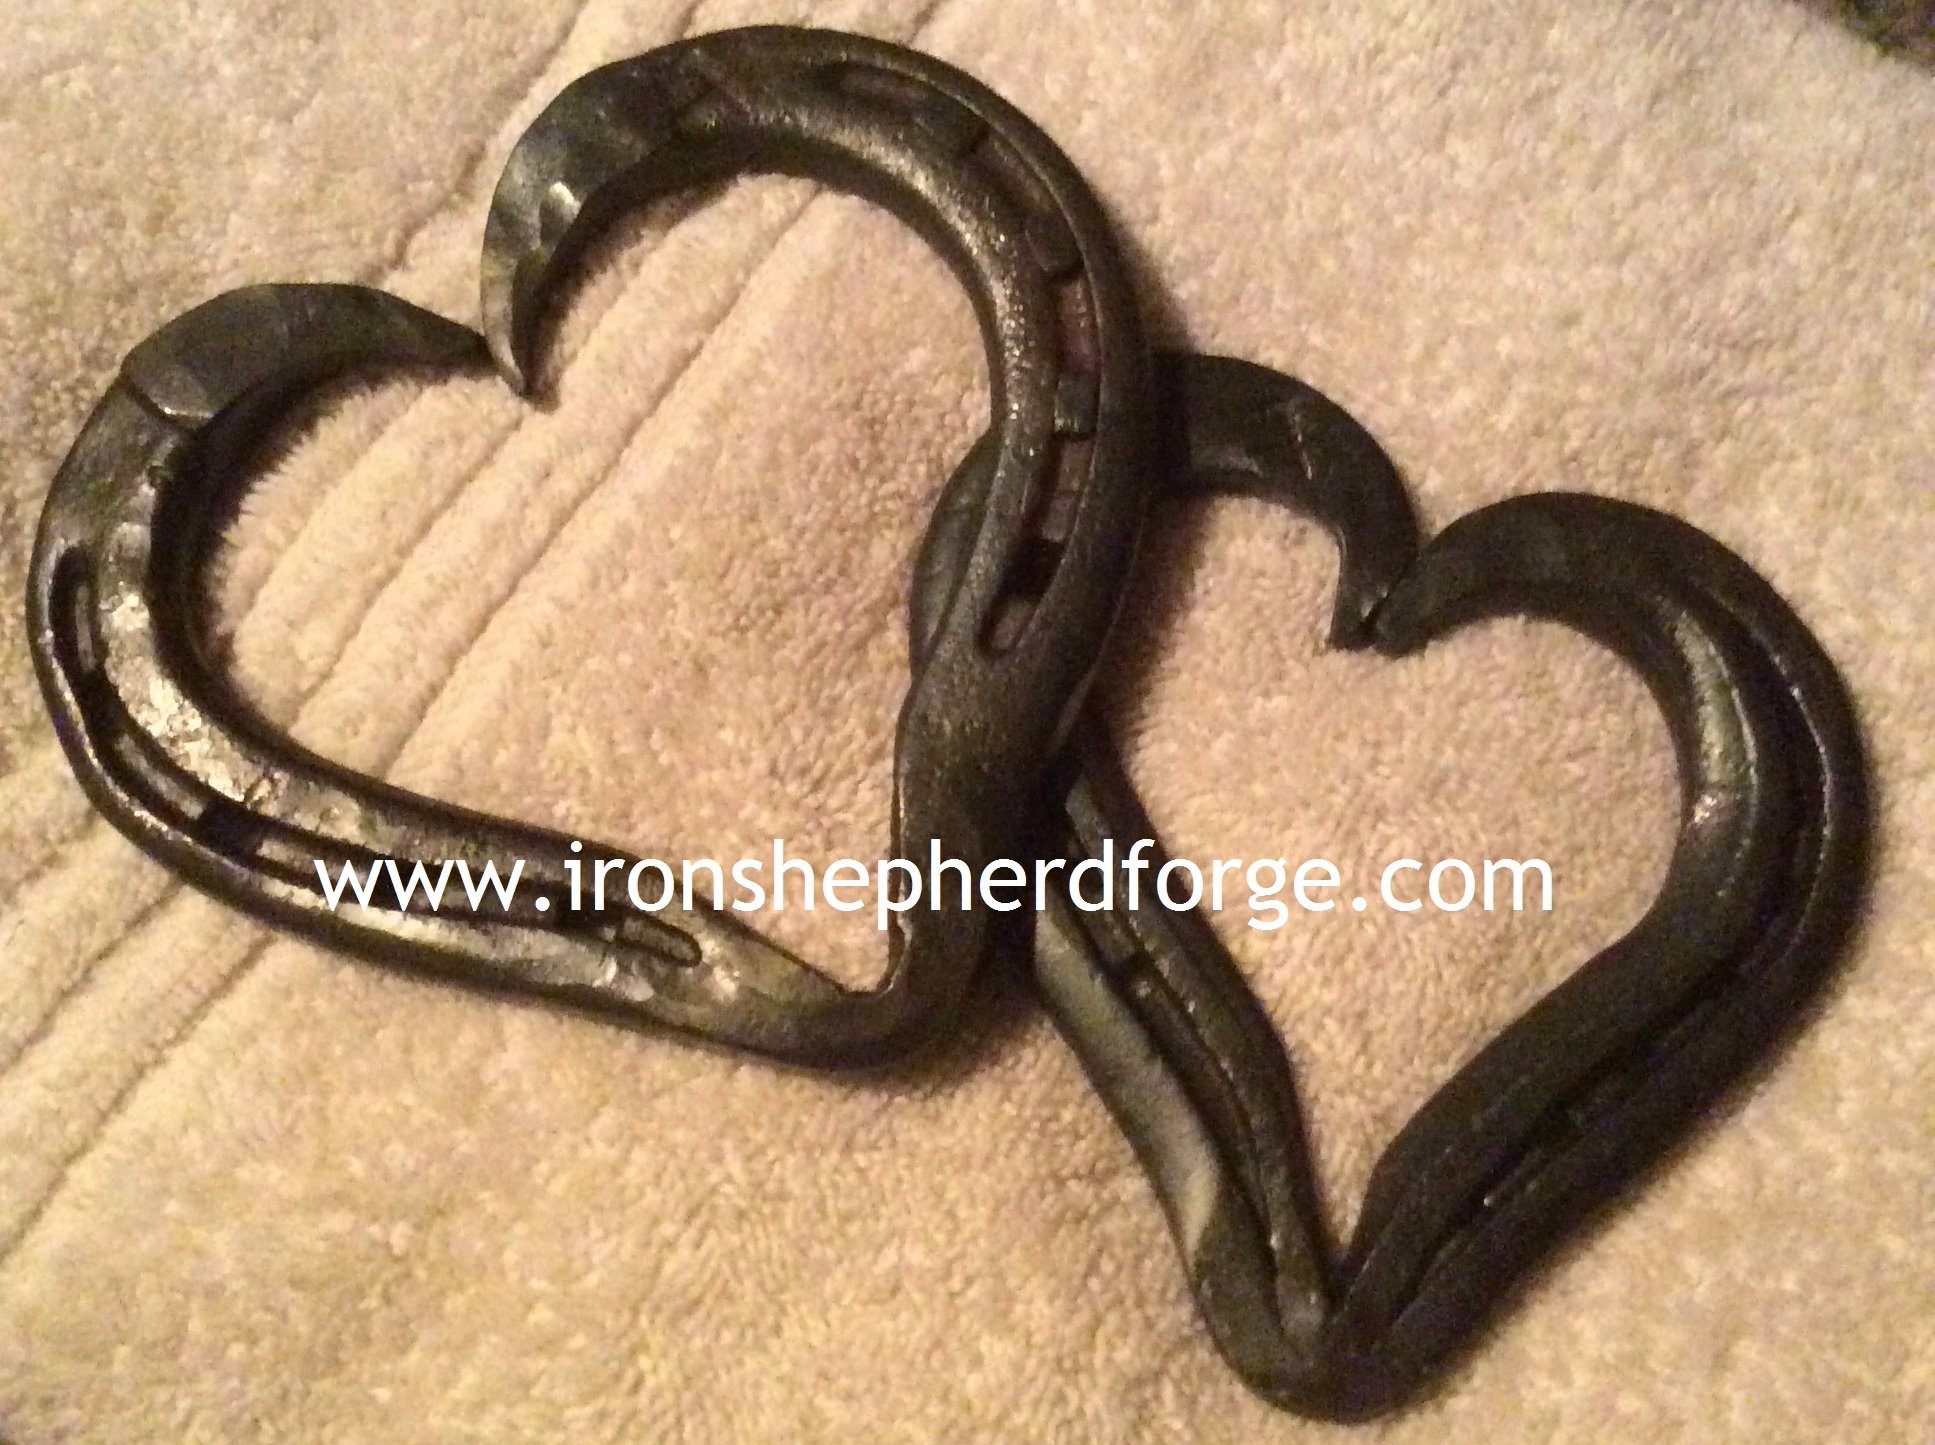 watermarked horseshoe hearts